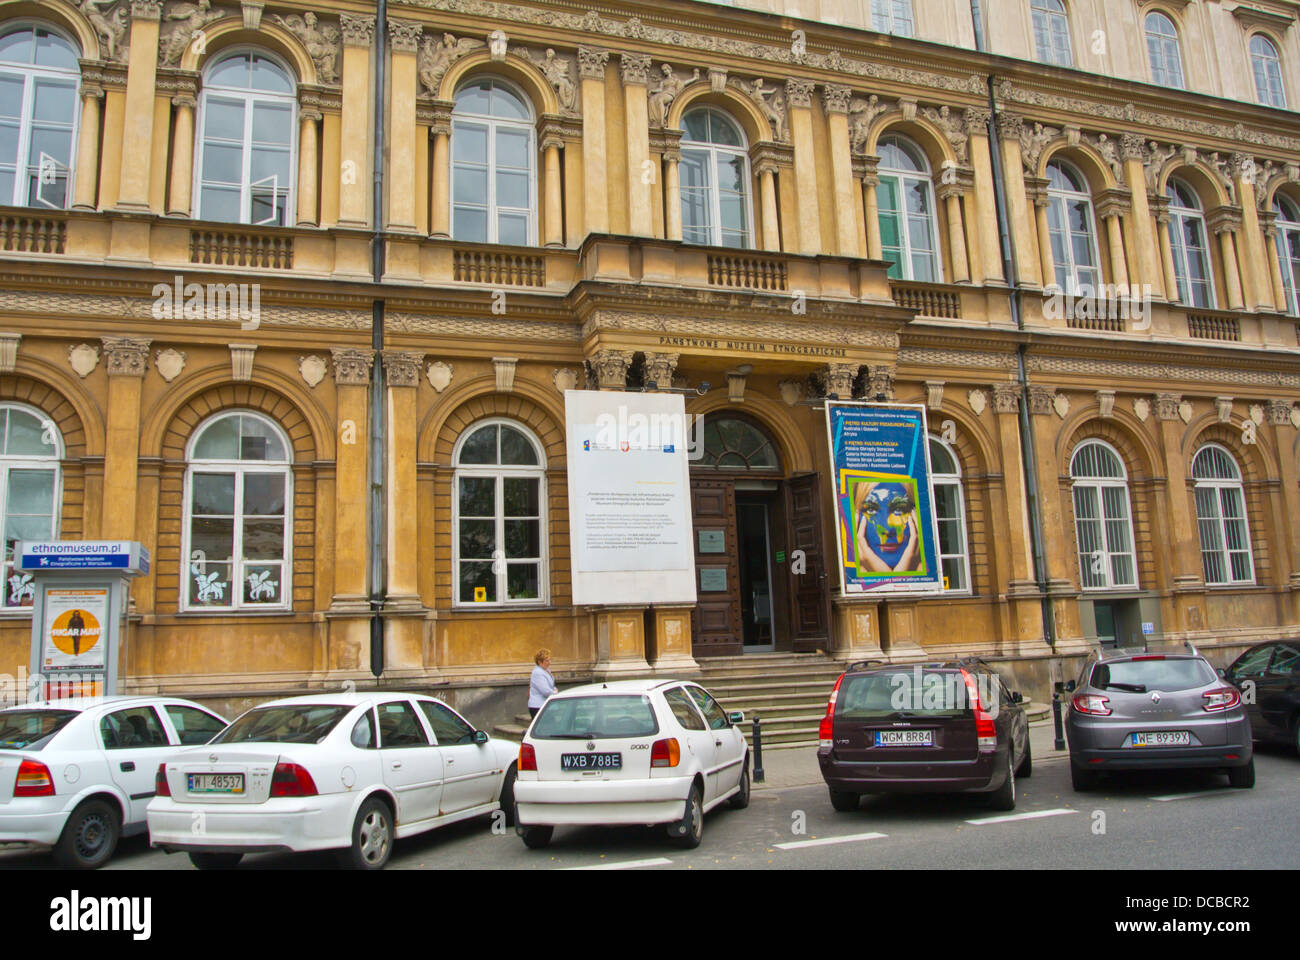 Ethnographic museum central Warsaw Poland Europe - Stock Image